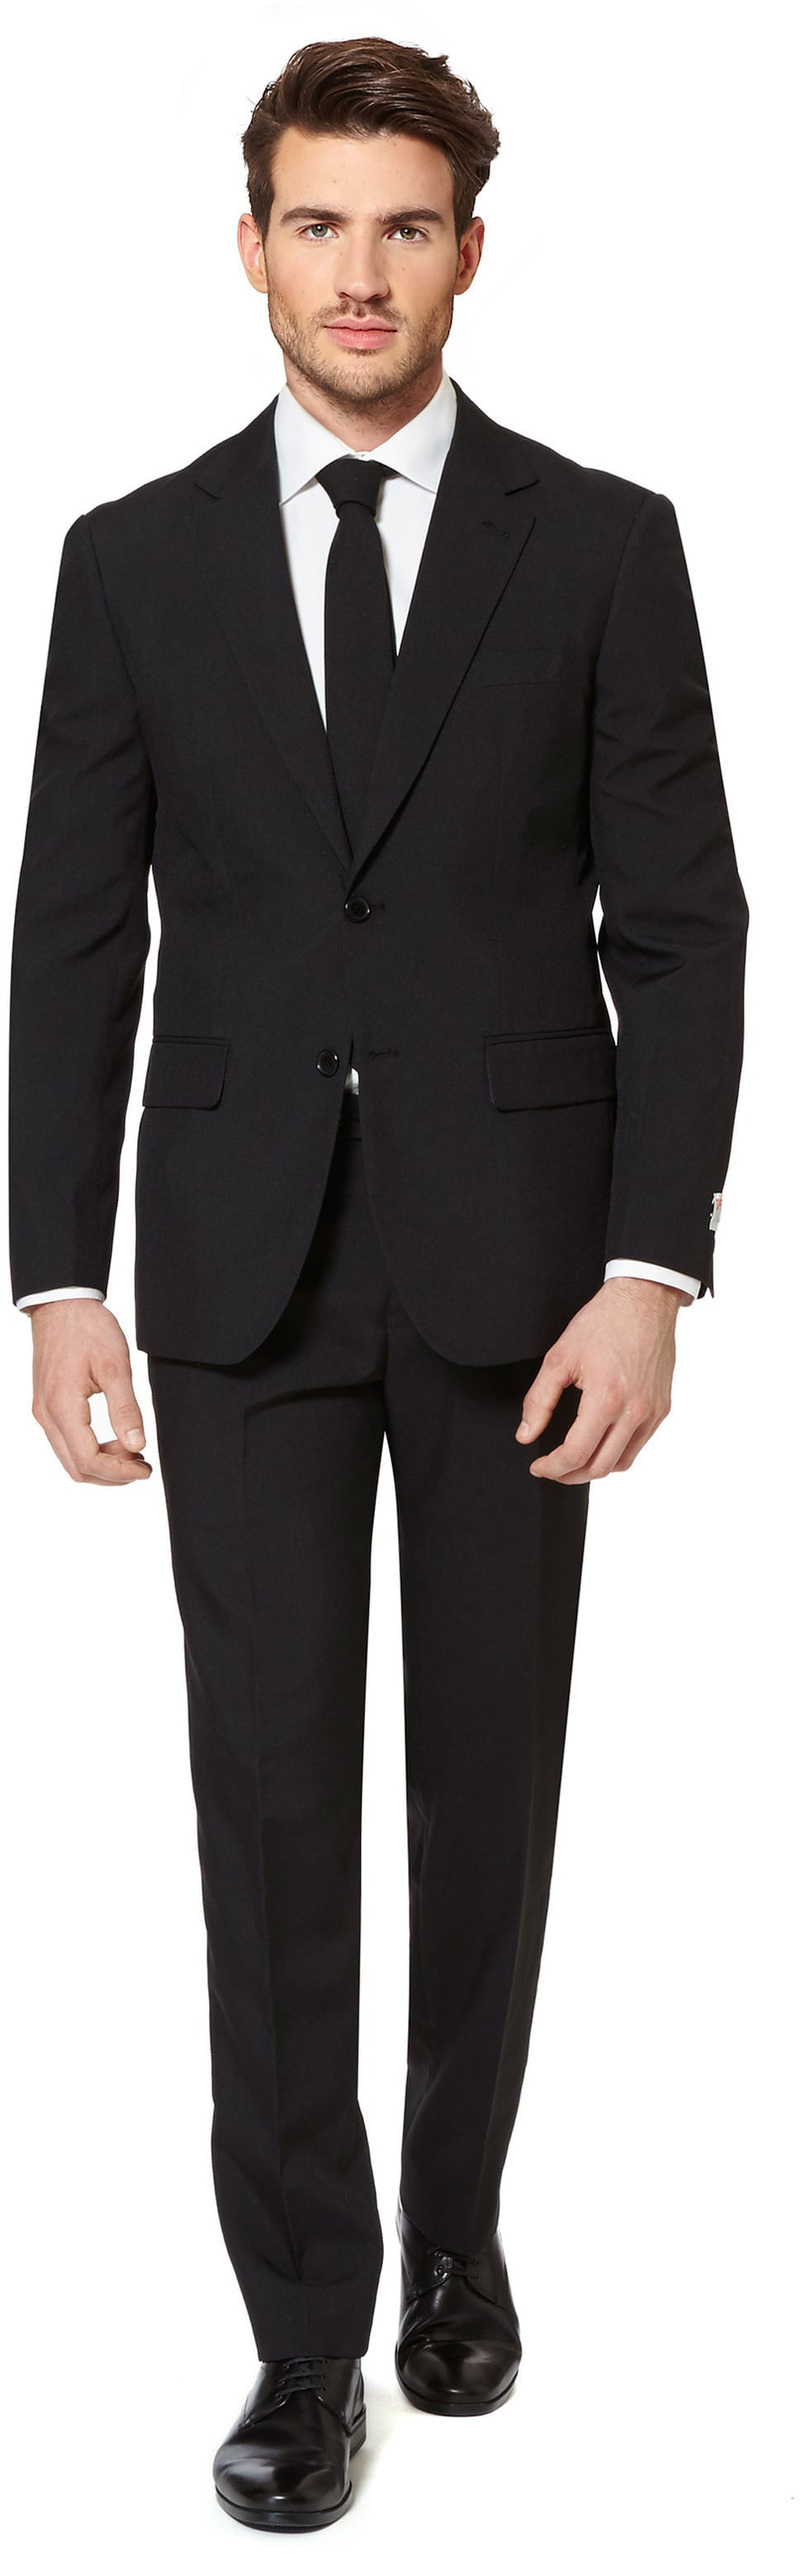 OppoSuits Black Knight Suit photo 0